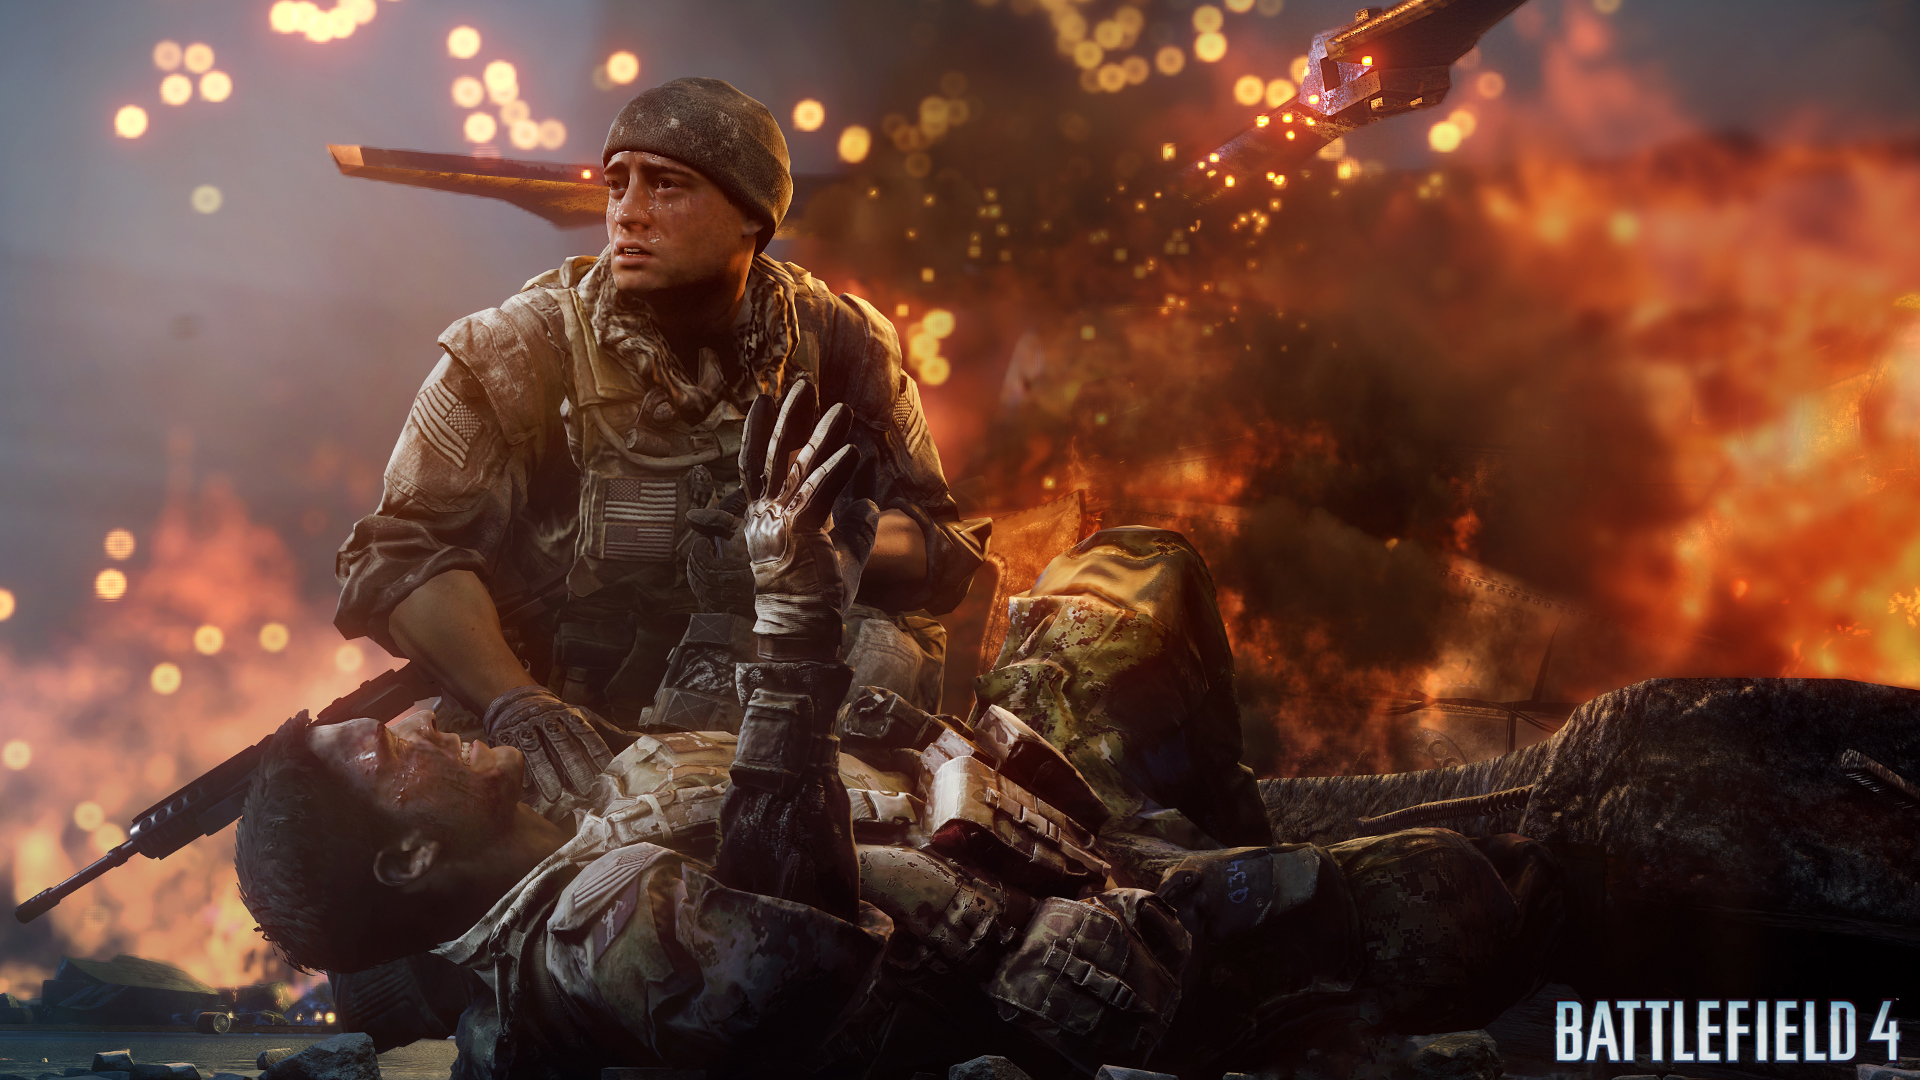 'Intermittent connectivity issues' Plaguing Battlefield 4 Players